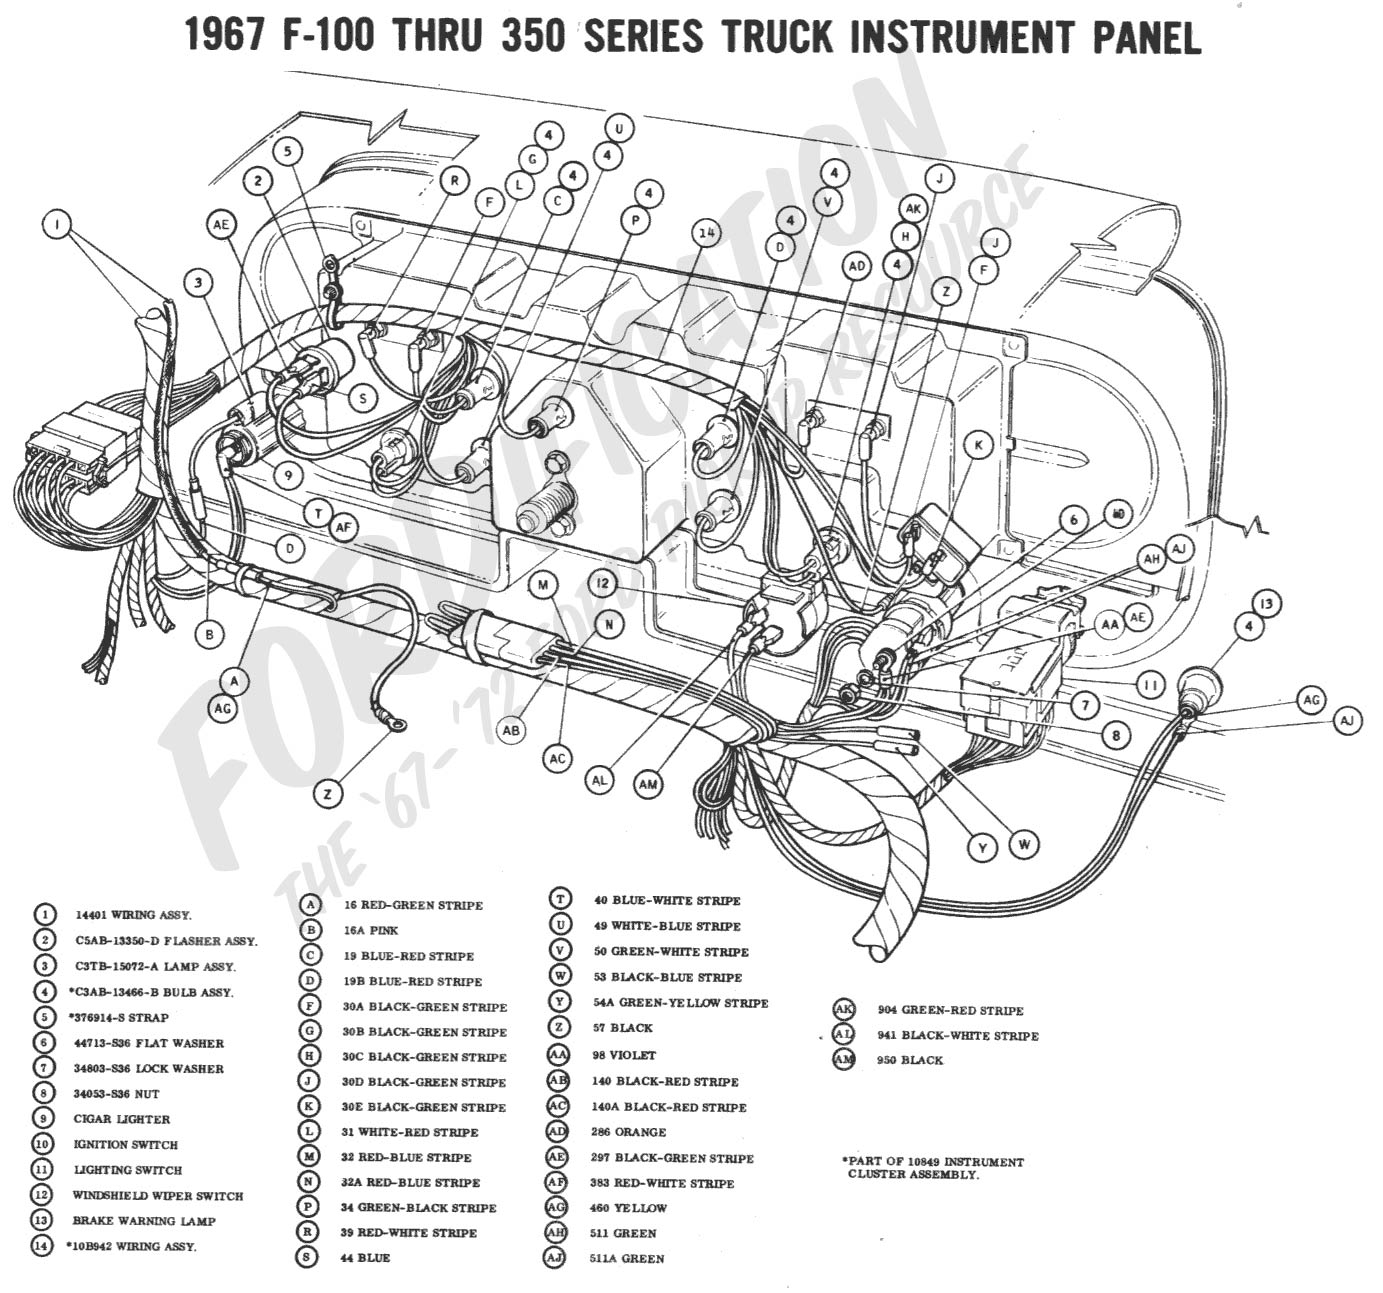 wiring a ford 289 v8 - wiring diagram options draw-neutral-a -  draw-neutral-a.studiopyxis.it  pyxis